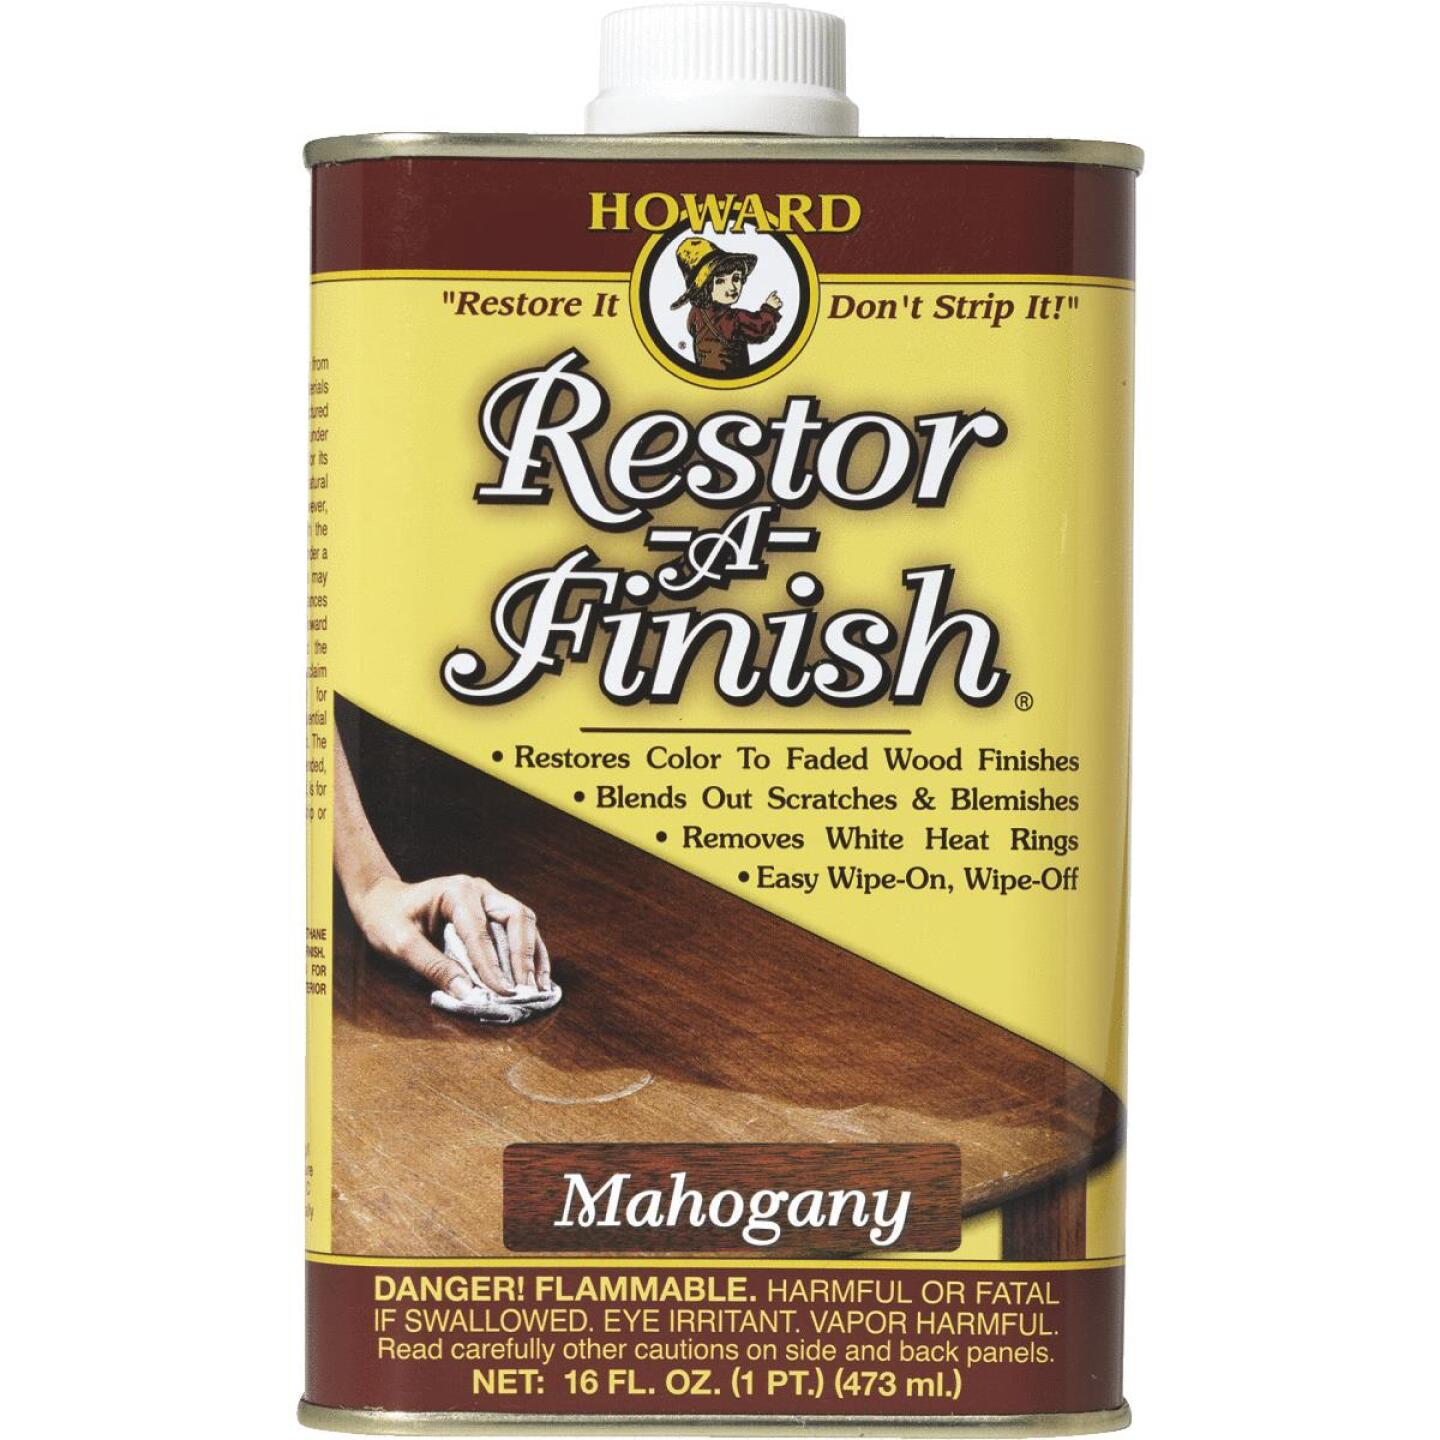 Howard Restor-A-Finish 16 Oz. Mahogany Wood Finish Restorer Image 1